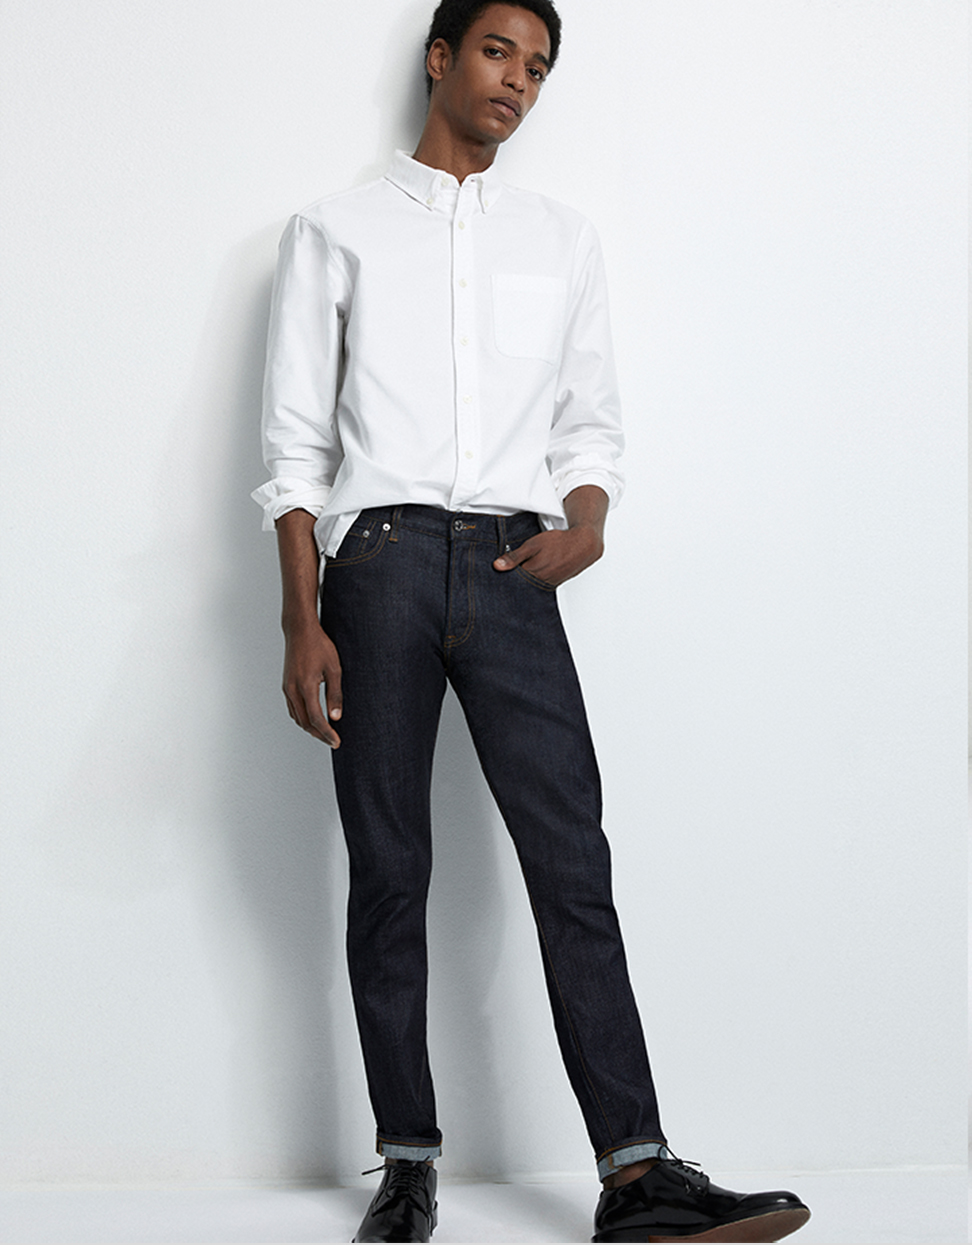 Club Monaco: Designer Men's & Women's Clothing